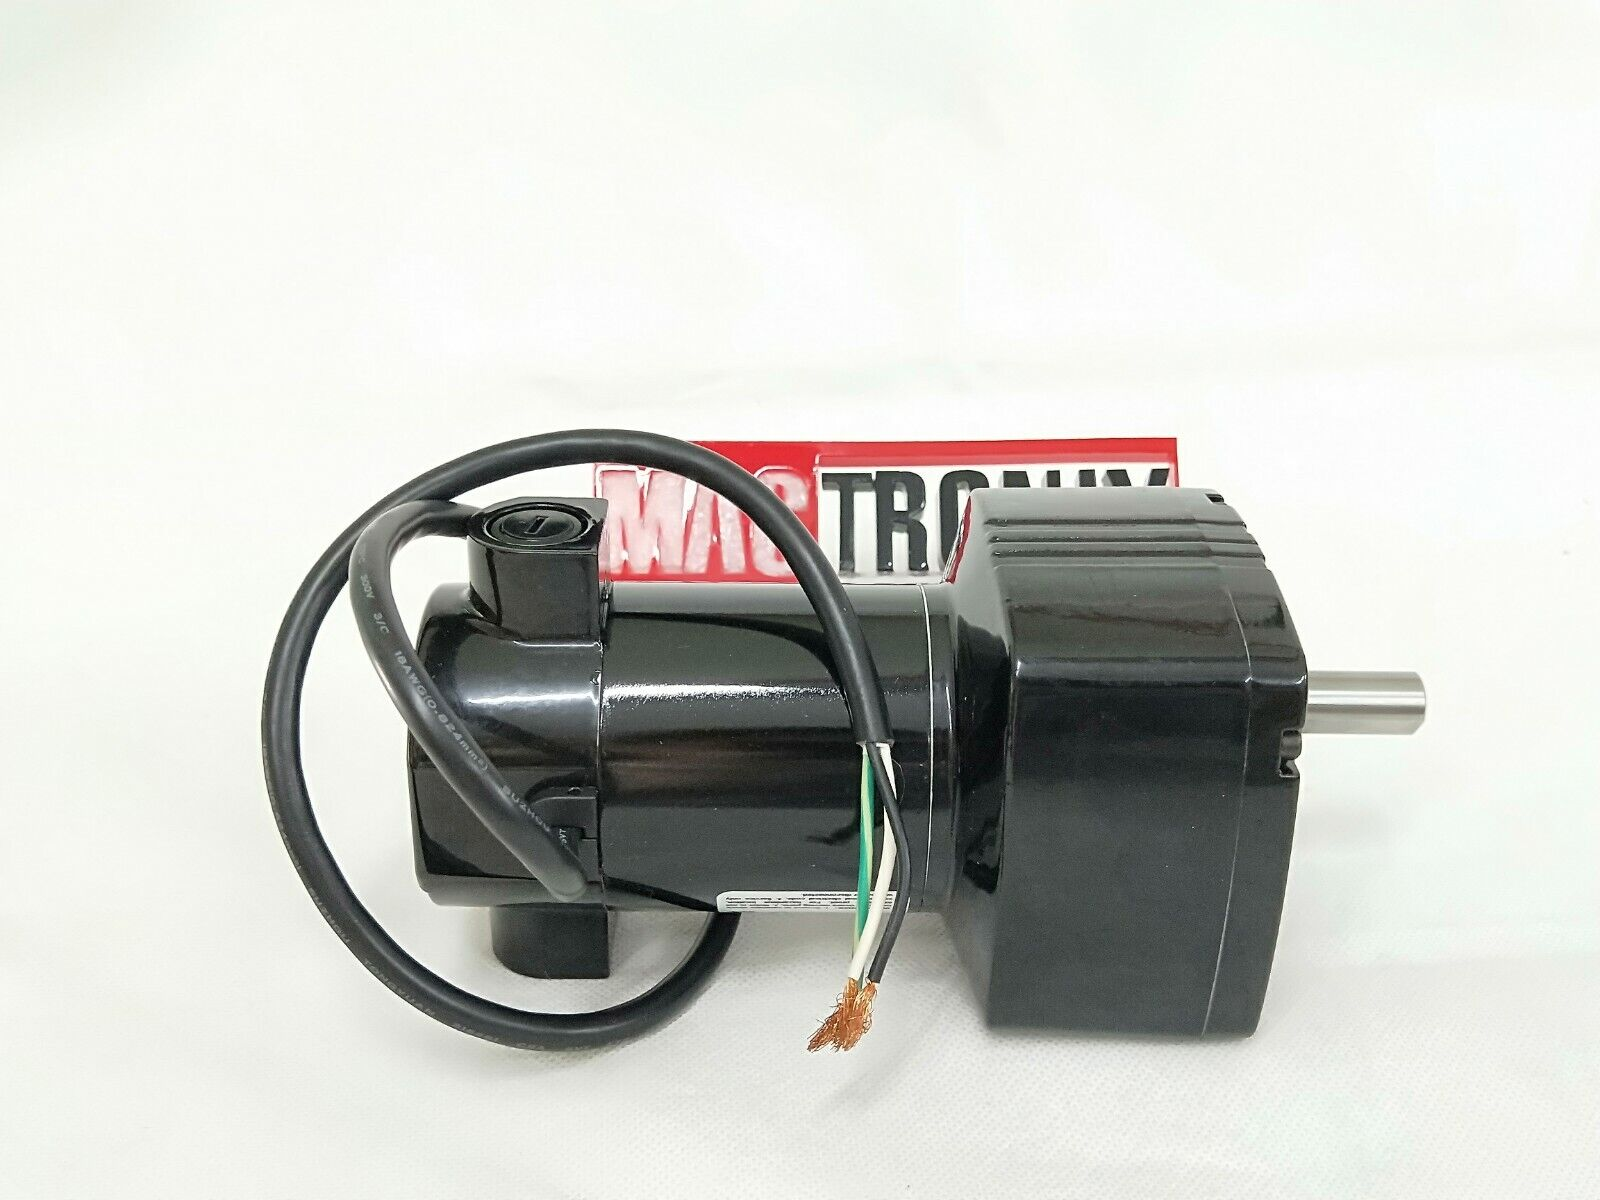 Details about  /Bodine 24A2BEPM-D5 24A2BEPMD5 Gear Motor 130V w// Cut Cable